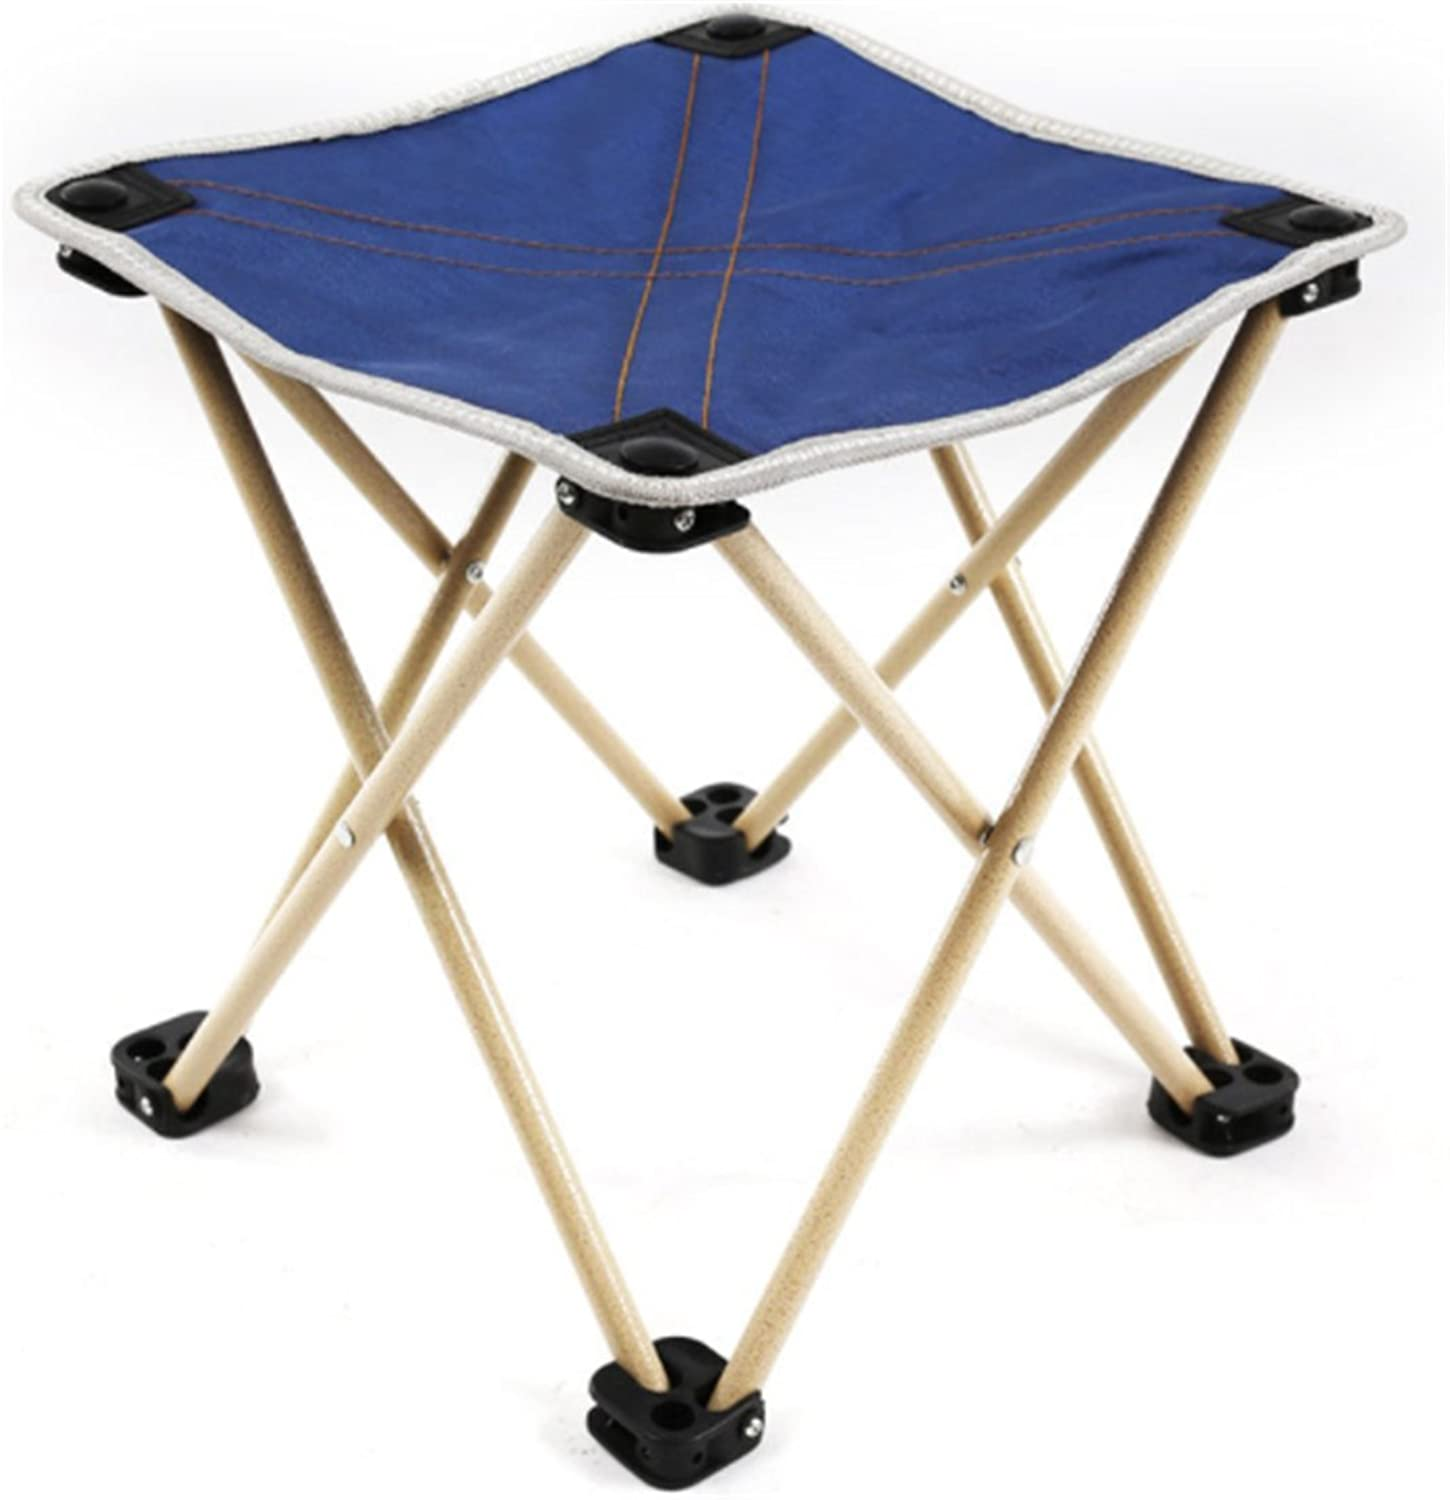 Folding Stool Ultralight Outdoor Fishing Travel Four Corners Mazar Space Chair Small Bench Folding Chair,4,L